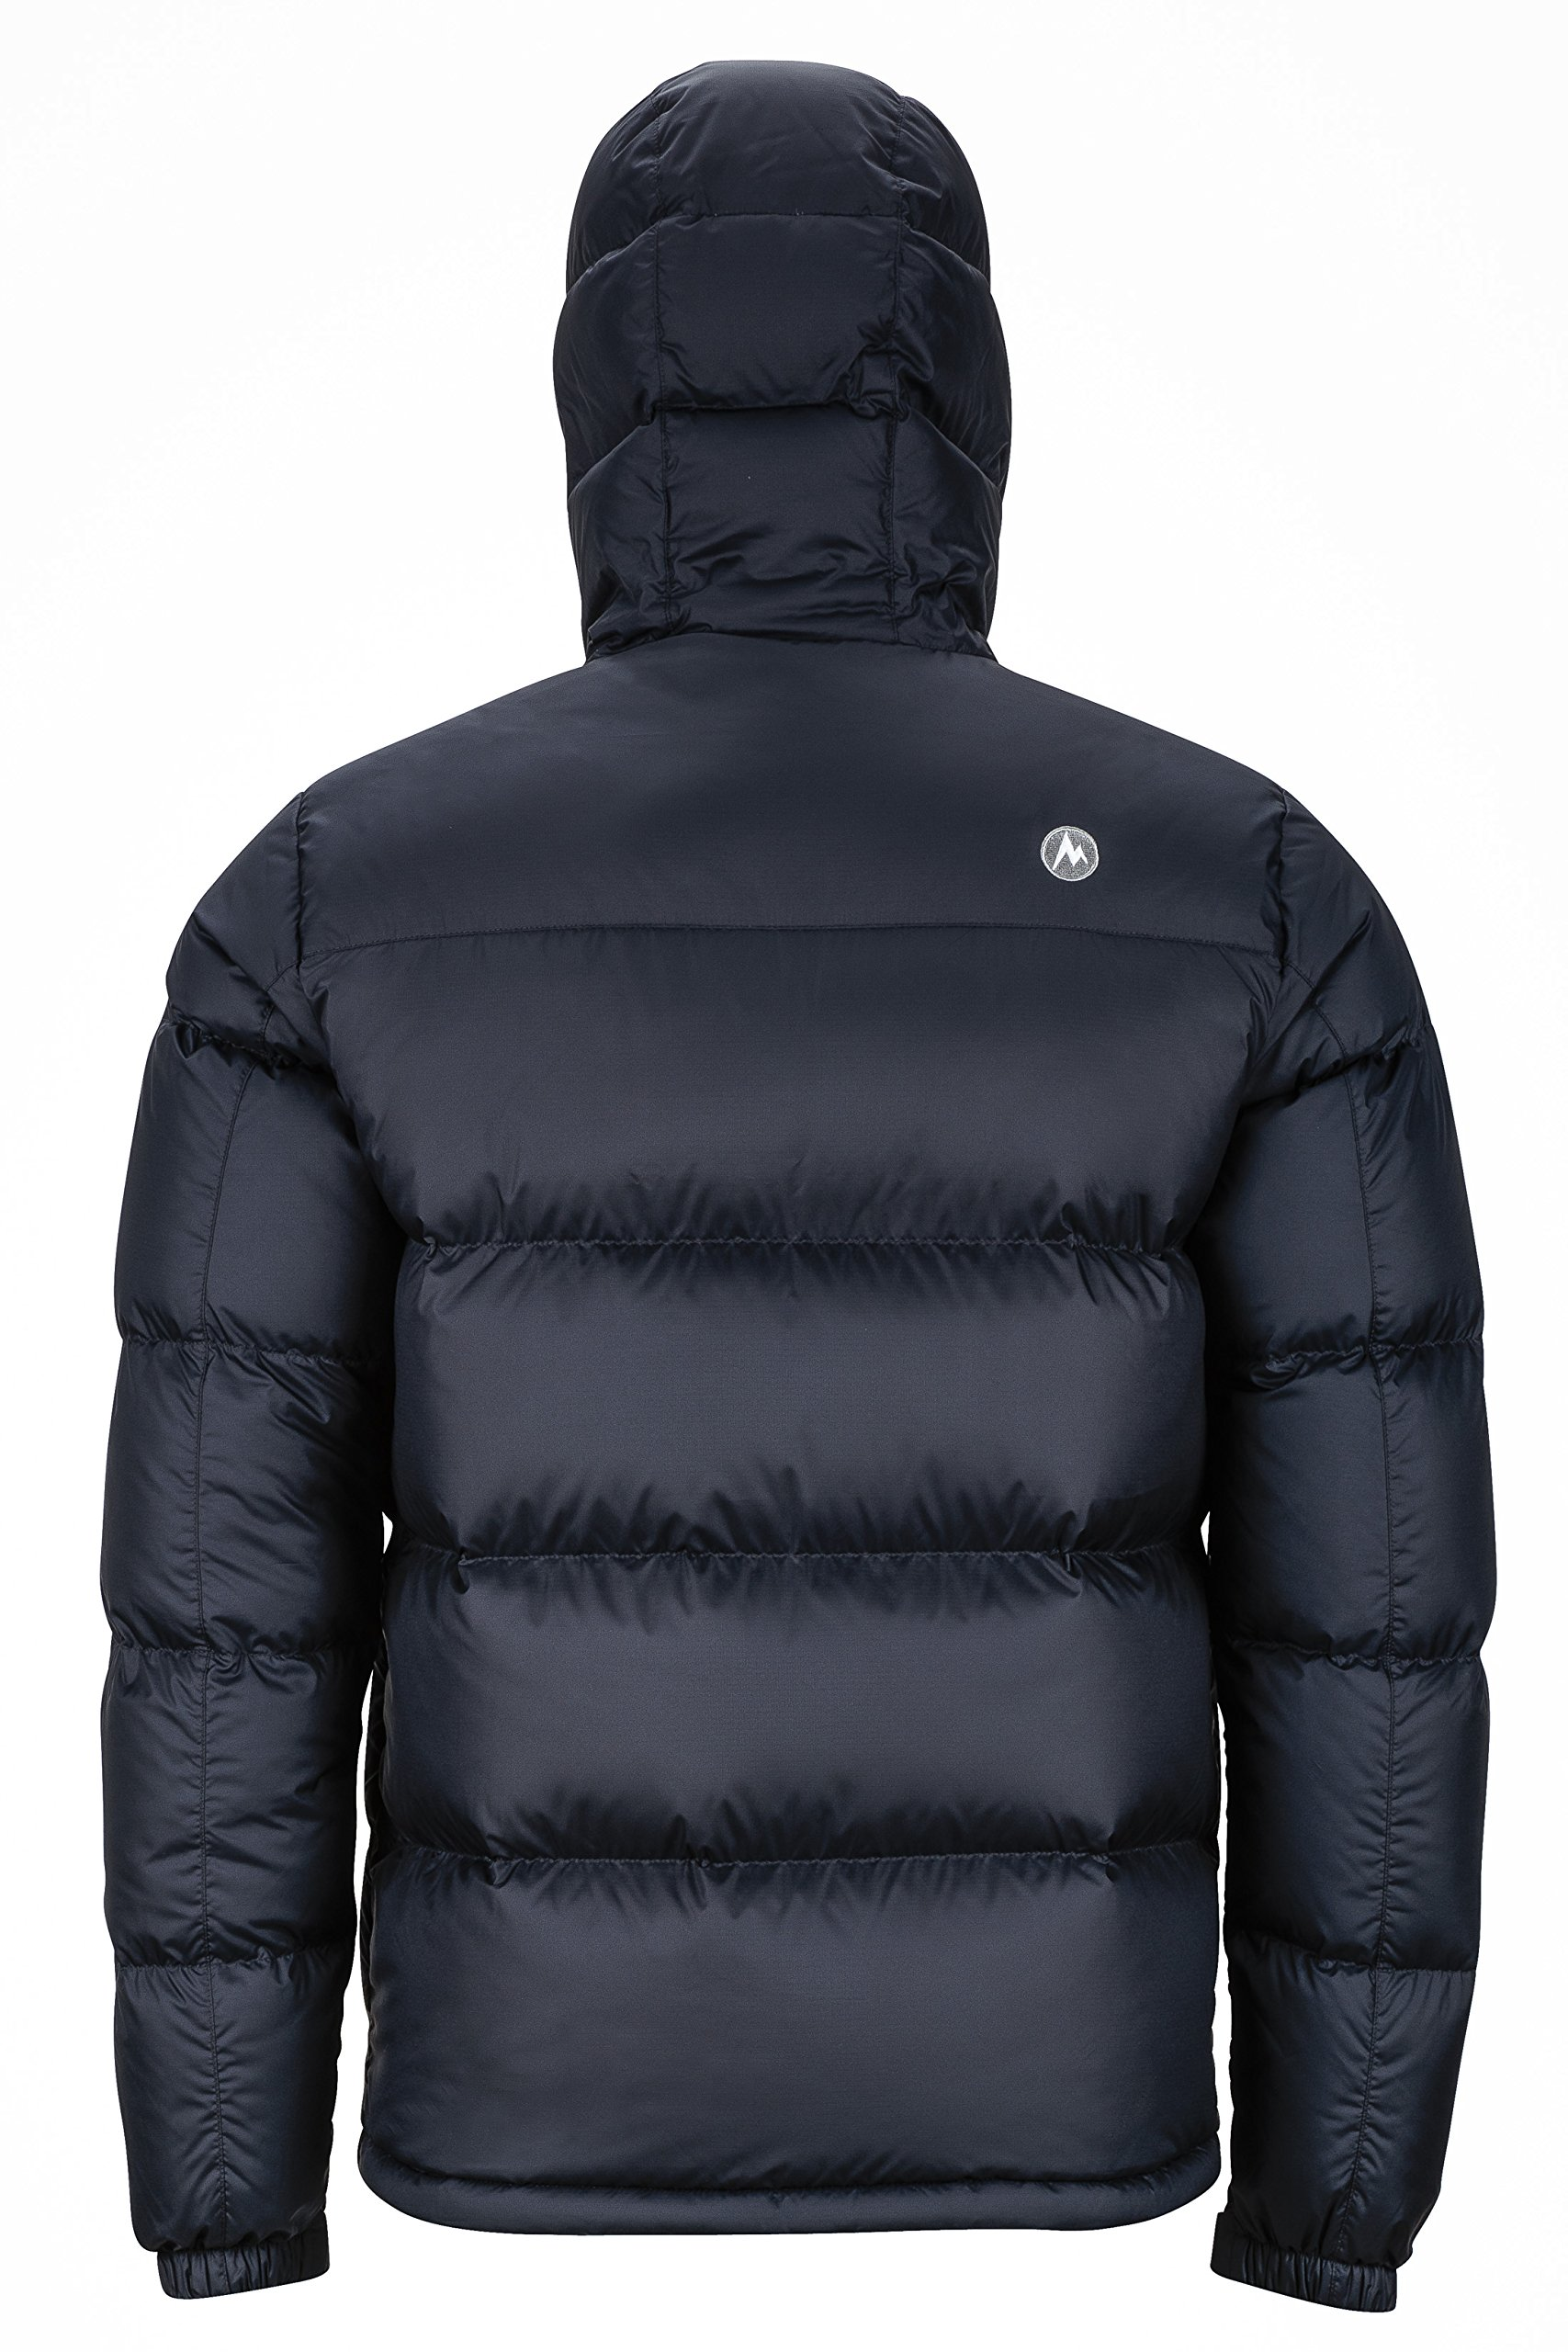 81ANdCyS8BL - Marmot Guides Down Winter Puffer Jacket with Hood, Men, 700 Fill Power Down